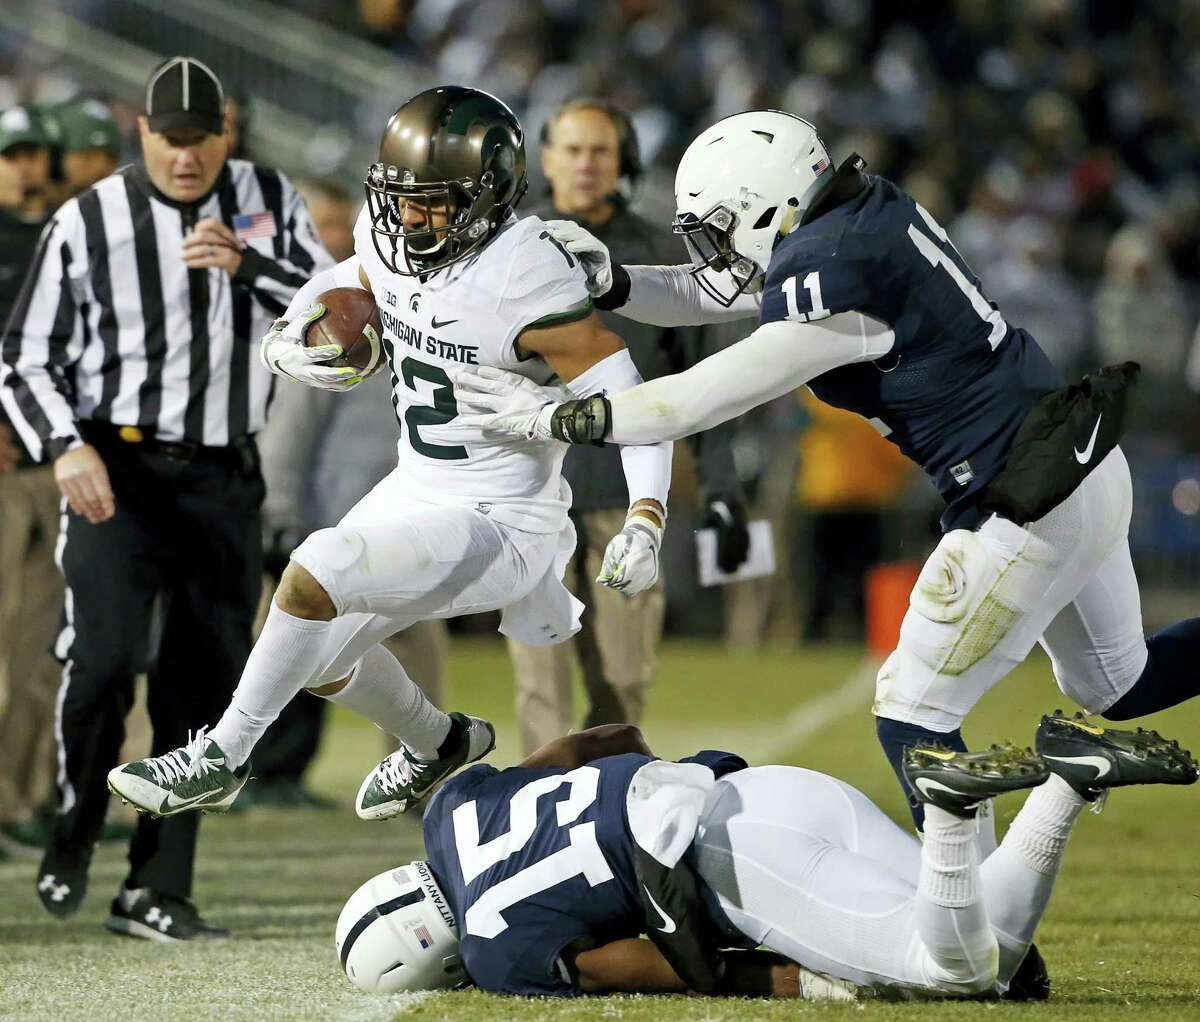 Penn State's Brandon Bell, right, pushes Michigan State's R.J. Shelton out of bounds during Saturday's game.